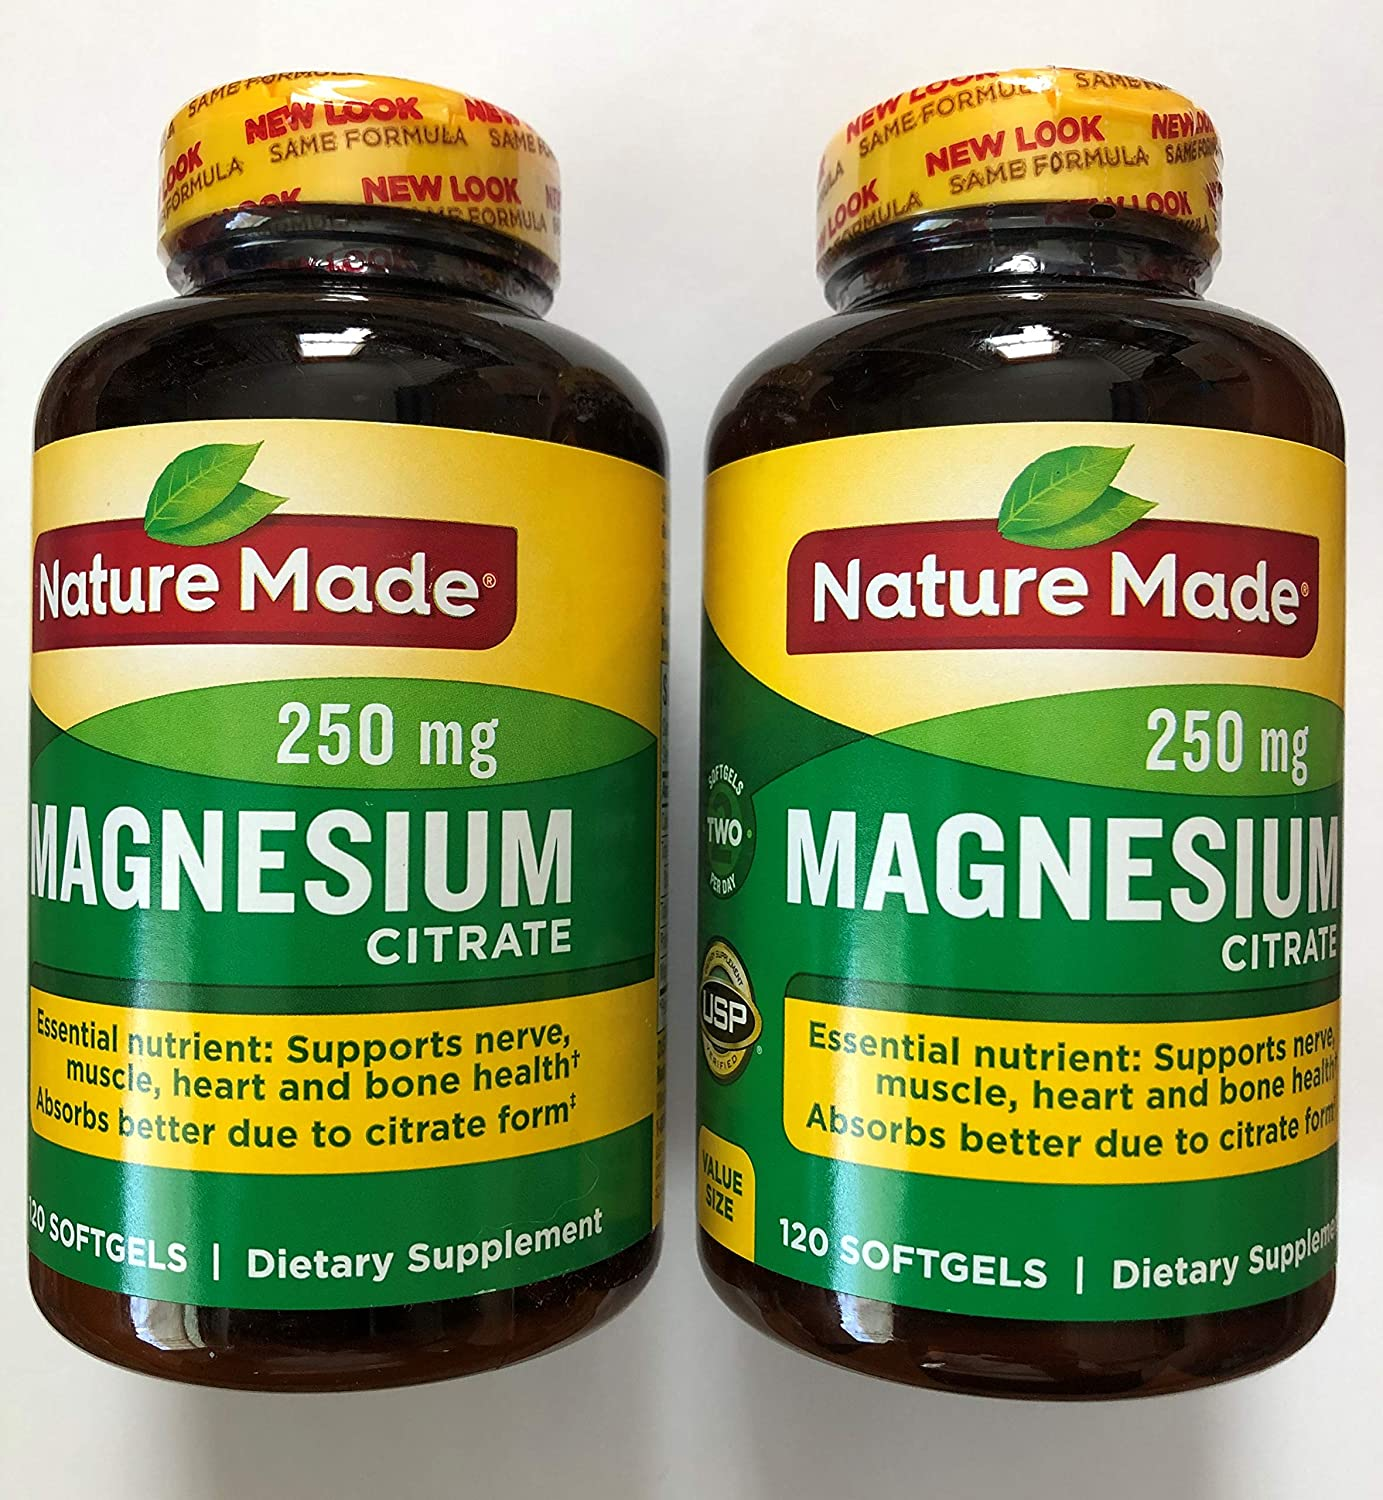 Nature Made Magnesium Citrate Softgels, 120 Count (Pack of 2)